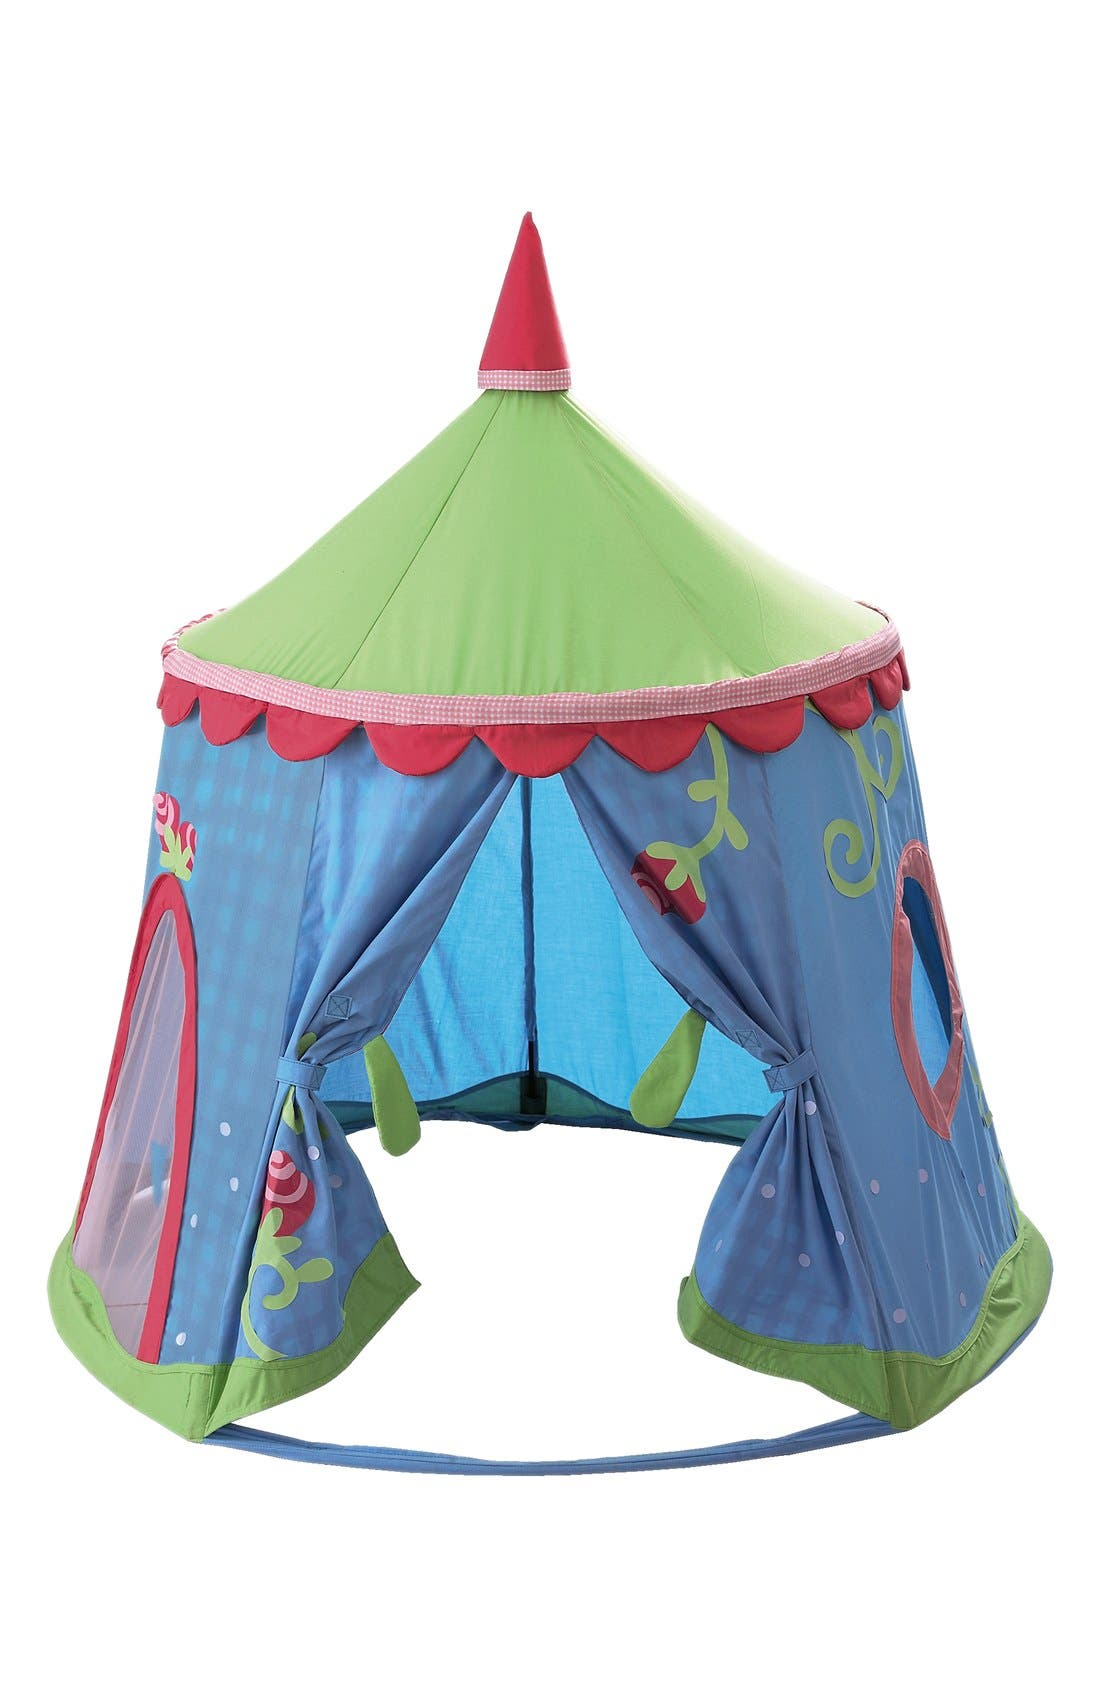 Alternate Image 1 Selected - HABA 'Caro-Lini' Play Tent